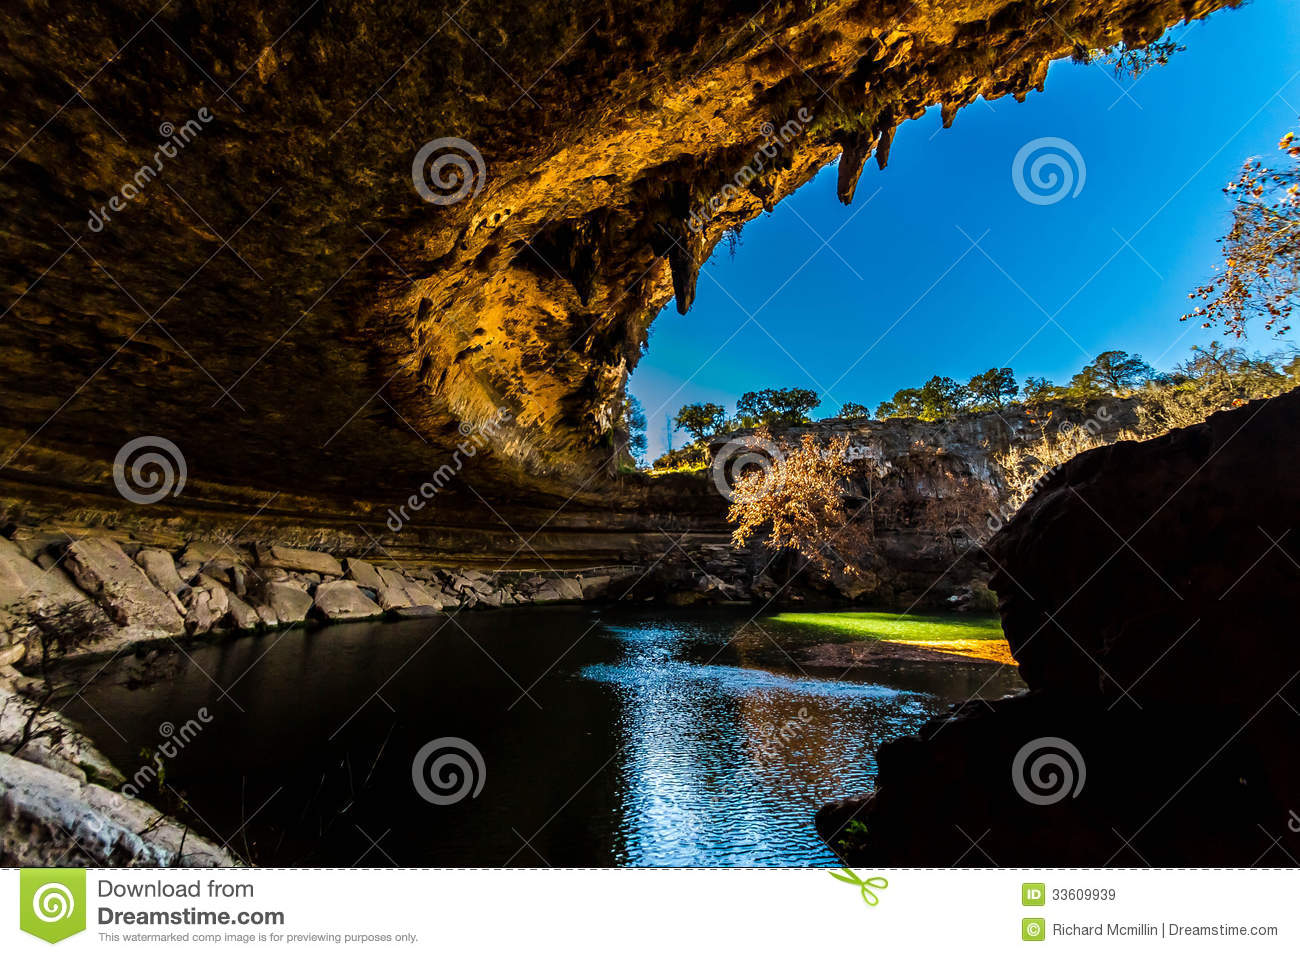 Inside Pool Cave cave swimming pool stock photos, images, & pictures - 251 images